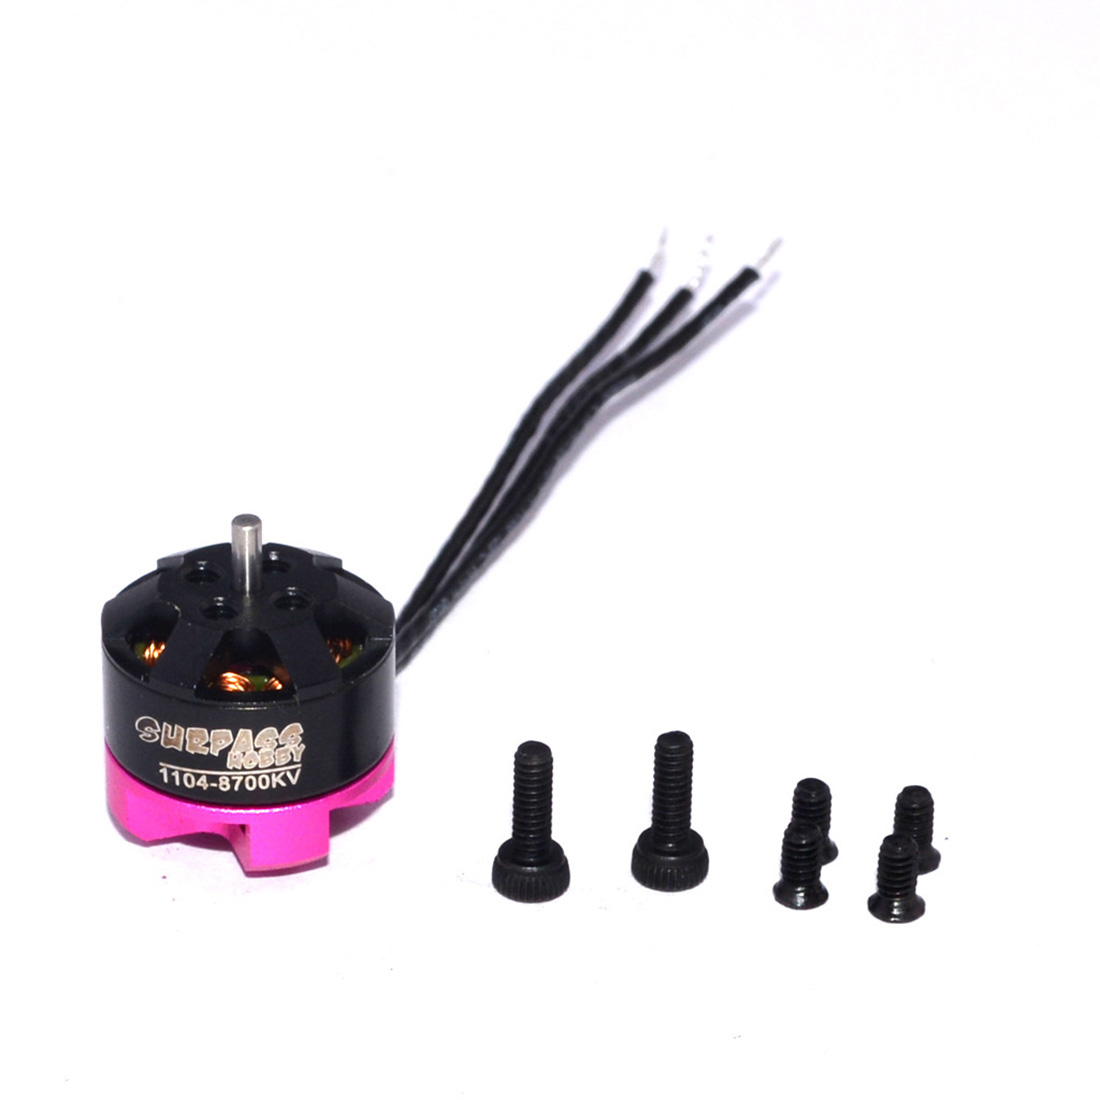 SURPASS HOBBY 1104 8700kv 7000KV <font><b>2S</b></font> Brushless <font><b>Motor</b></font> 12 Pole for RC 80 90 100 110 120 130 indoor FPV Racing Drone Quadcopter image